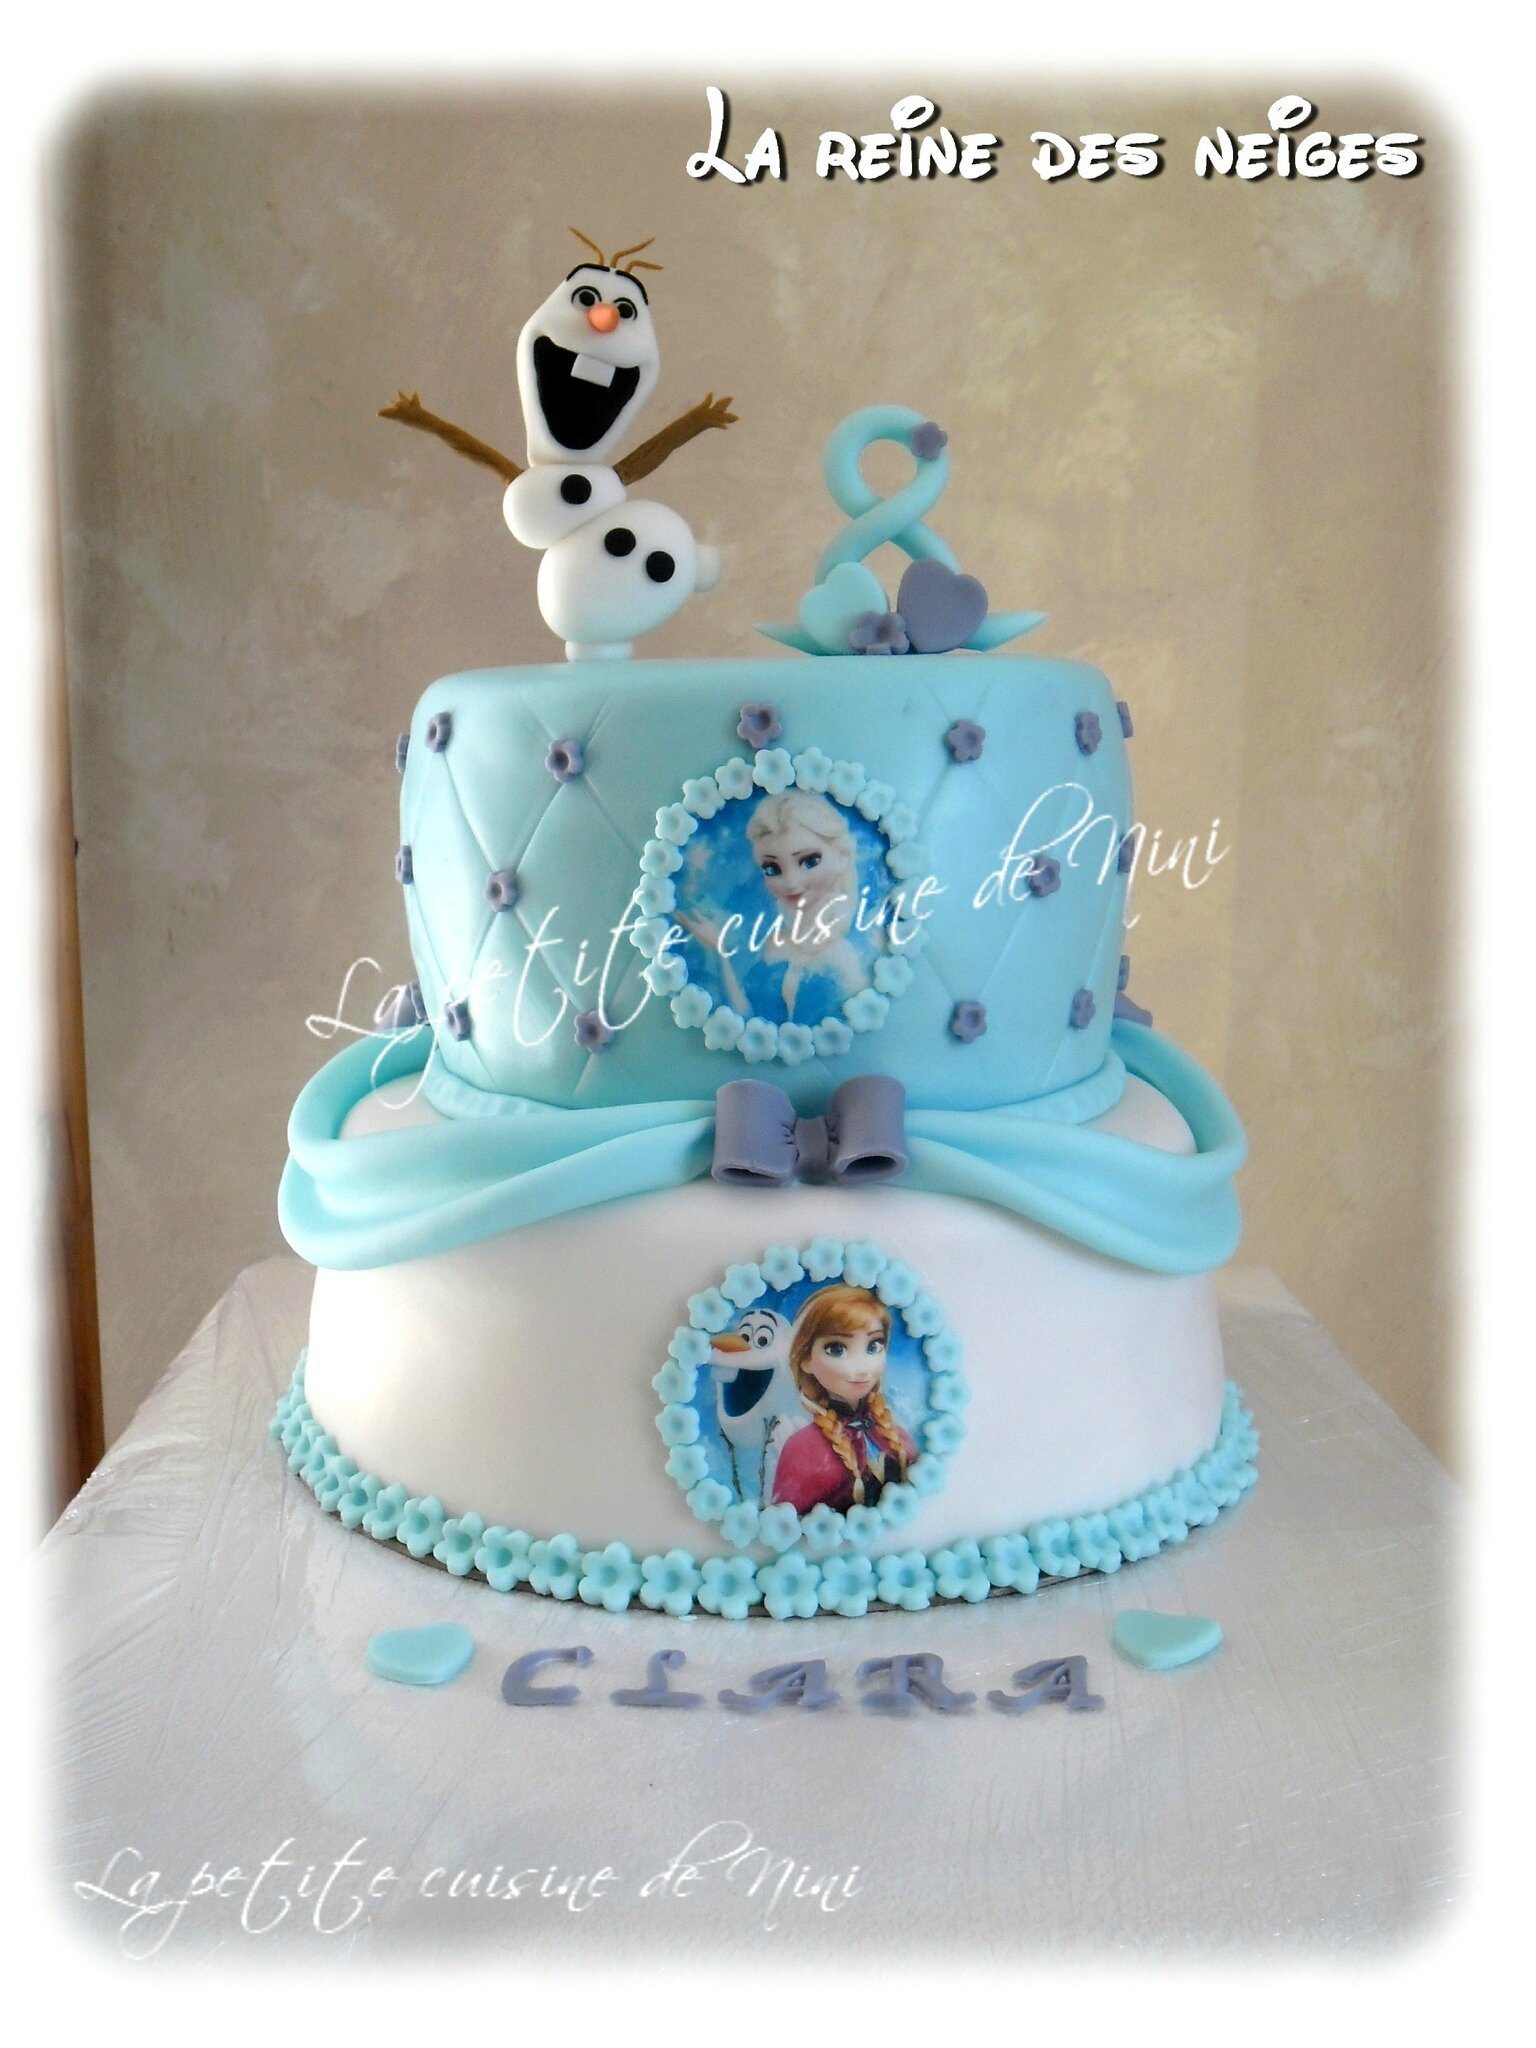 anniversaire24 gateau anniversaire la reine des neiges. Black Bedroom Furniture Sets. Home Design Ideas